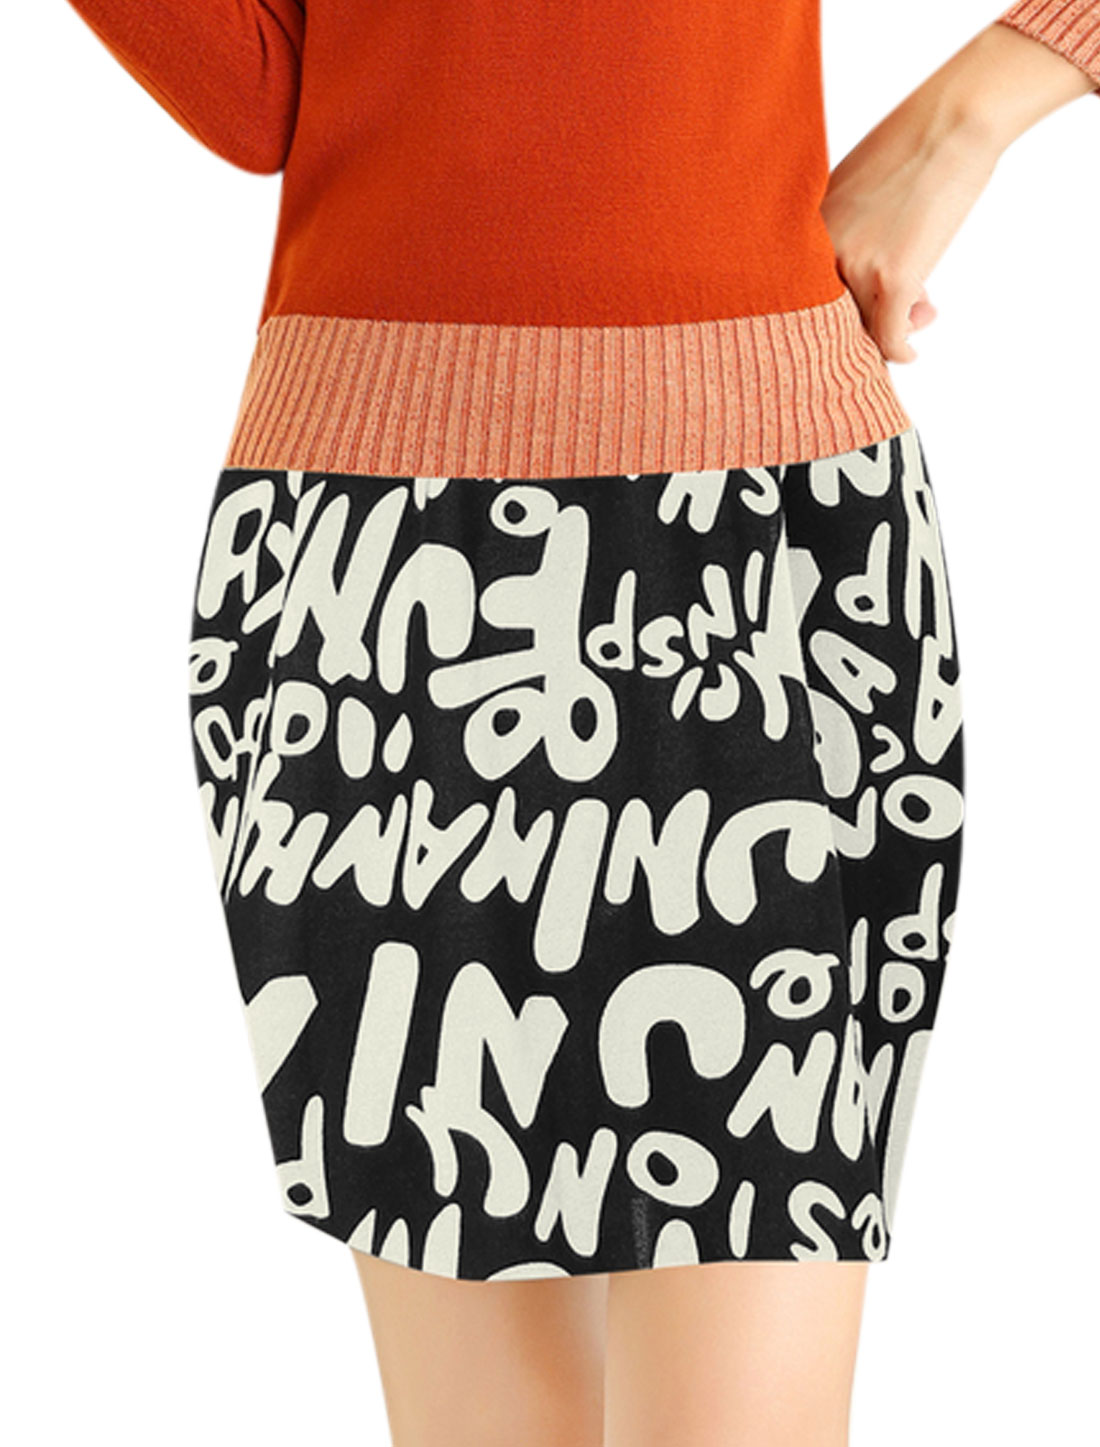 Allover Letters Print Over Hip Design Mini Skirt for Lady Black XS